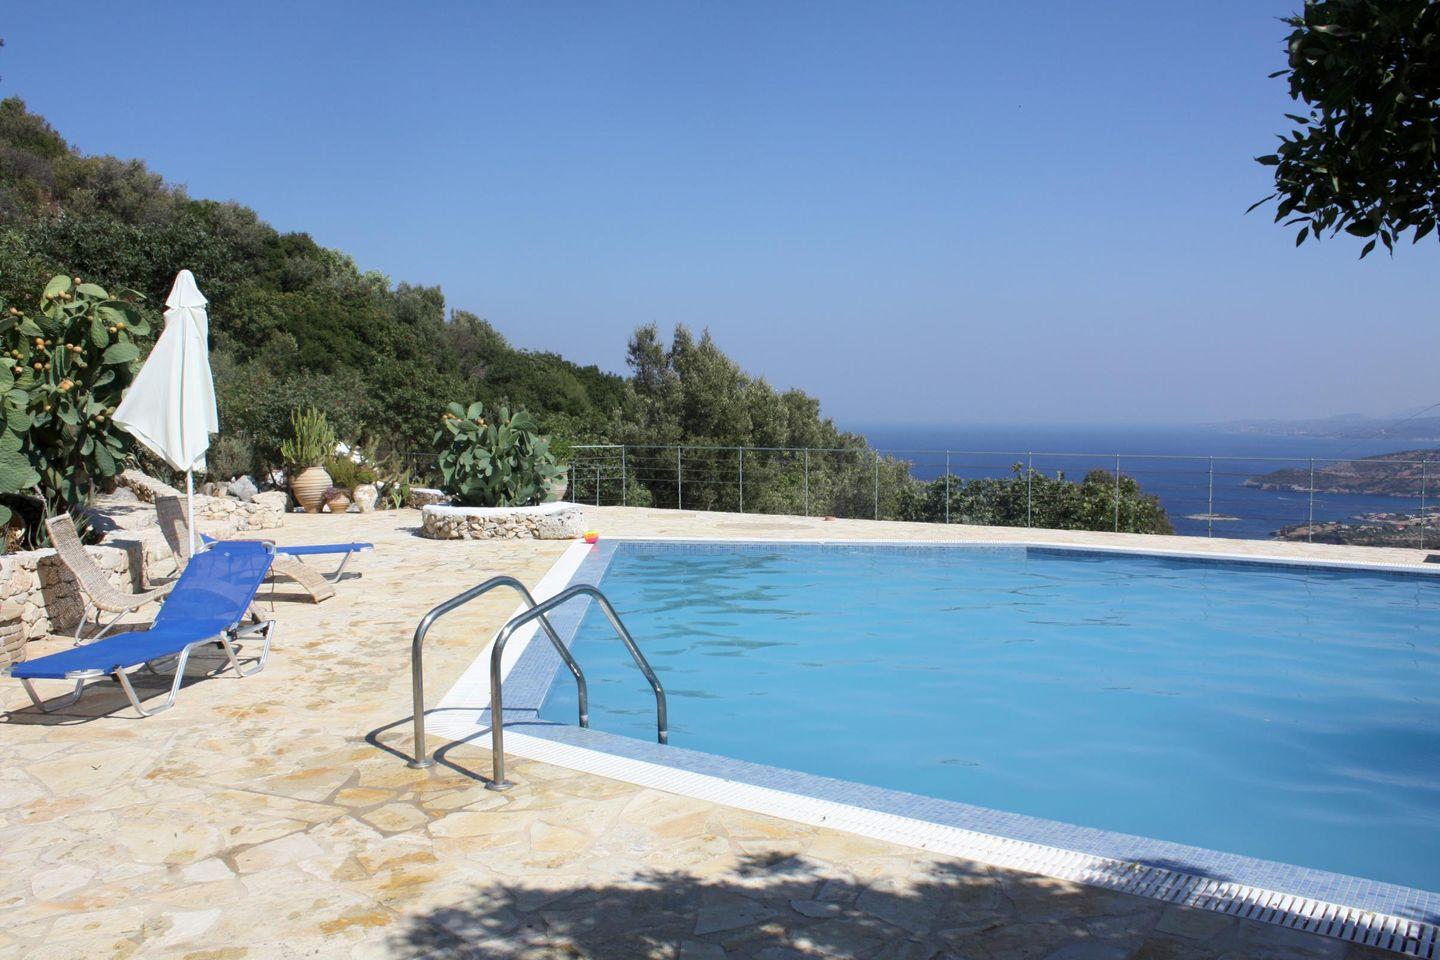 Ferienhaus Mit Pool Zakynthos Askos Zakynthos Holiday Rentals With Pool Jassu Reisen